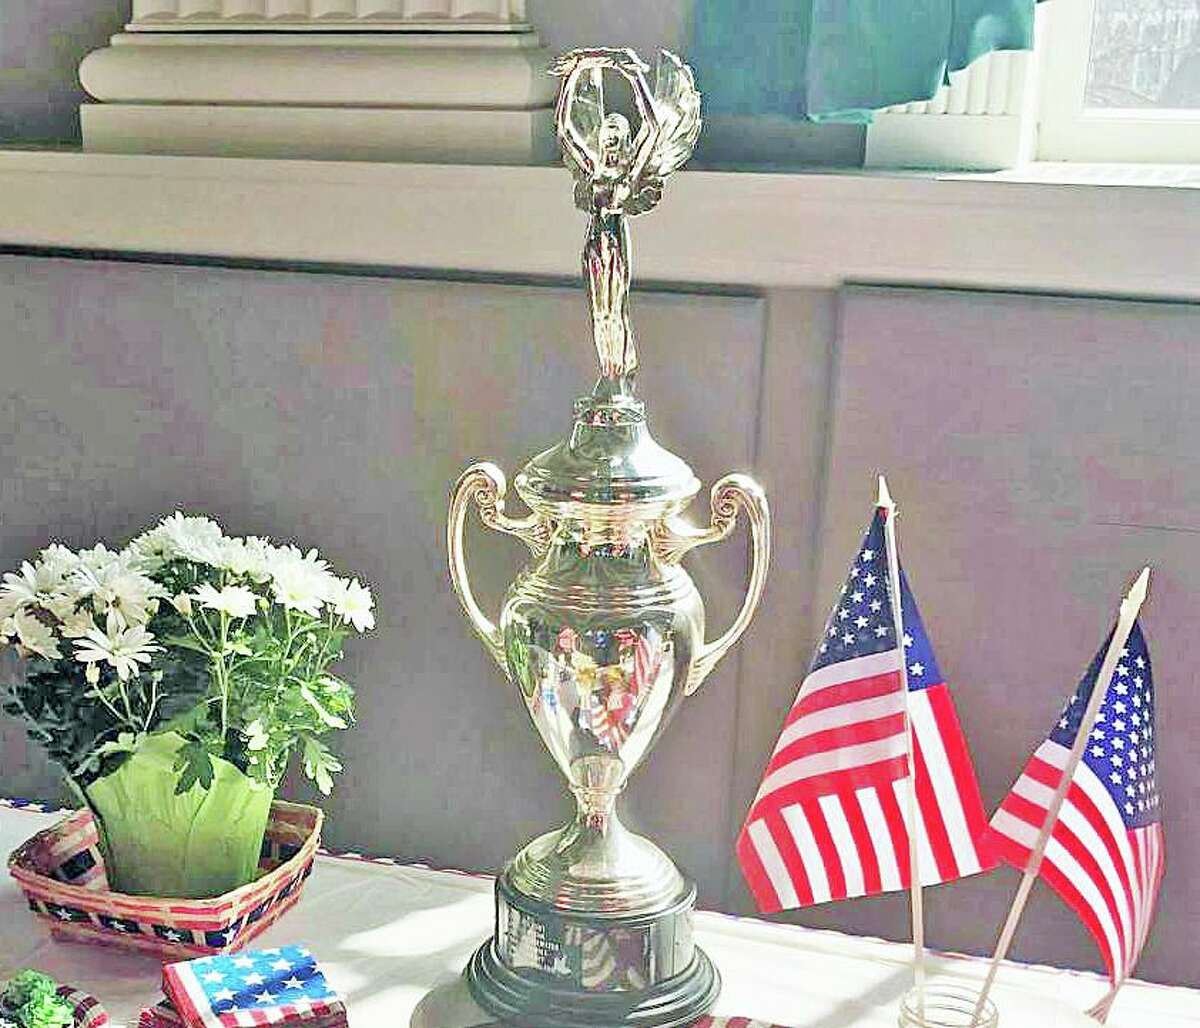 A Democracy Cup trophy, such as this one, was awarded to Newtown by Secretary of State Denise Merrill for having the highest voter turnout in the November 2020 elections for a mid-size town.